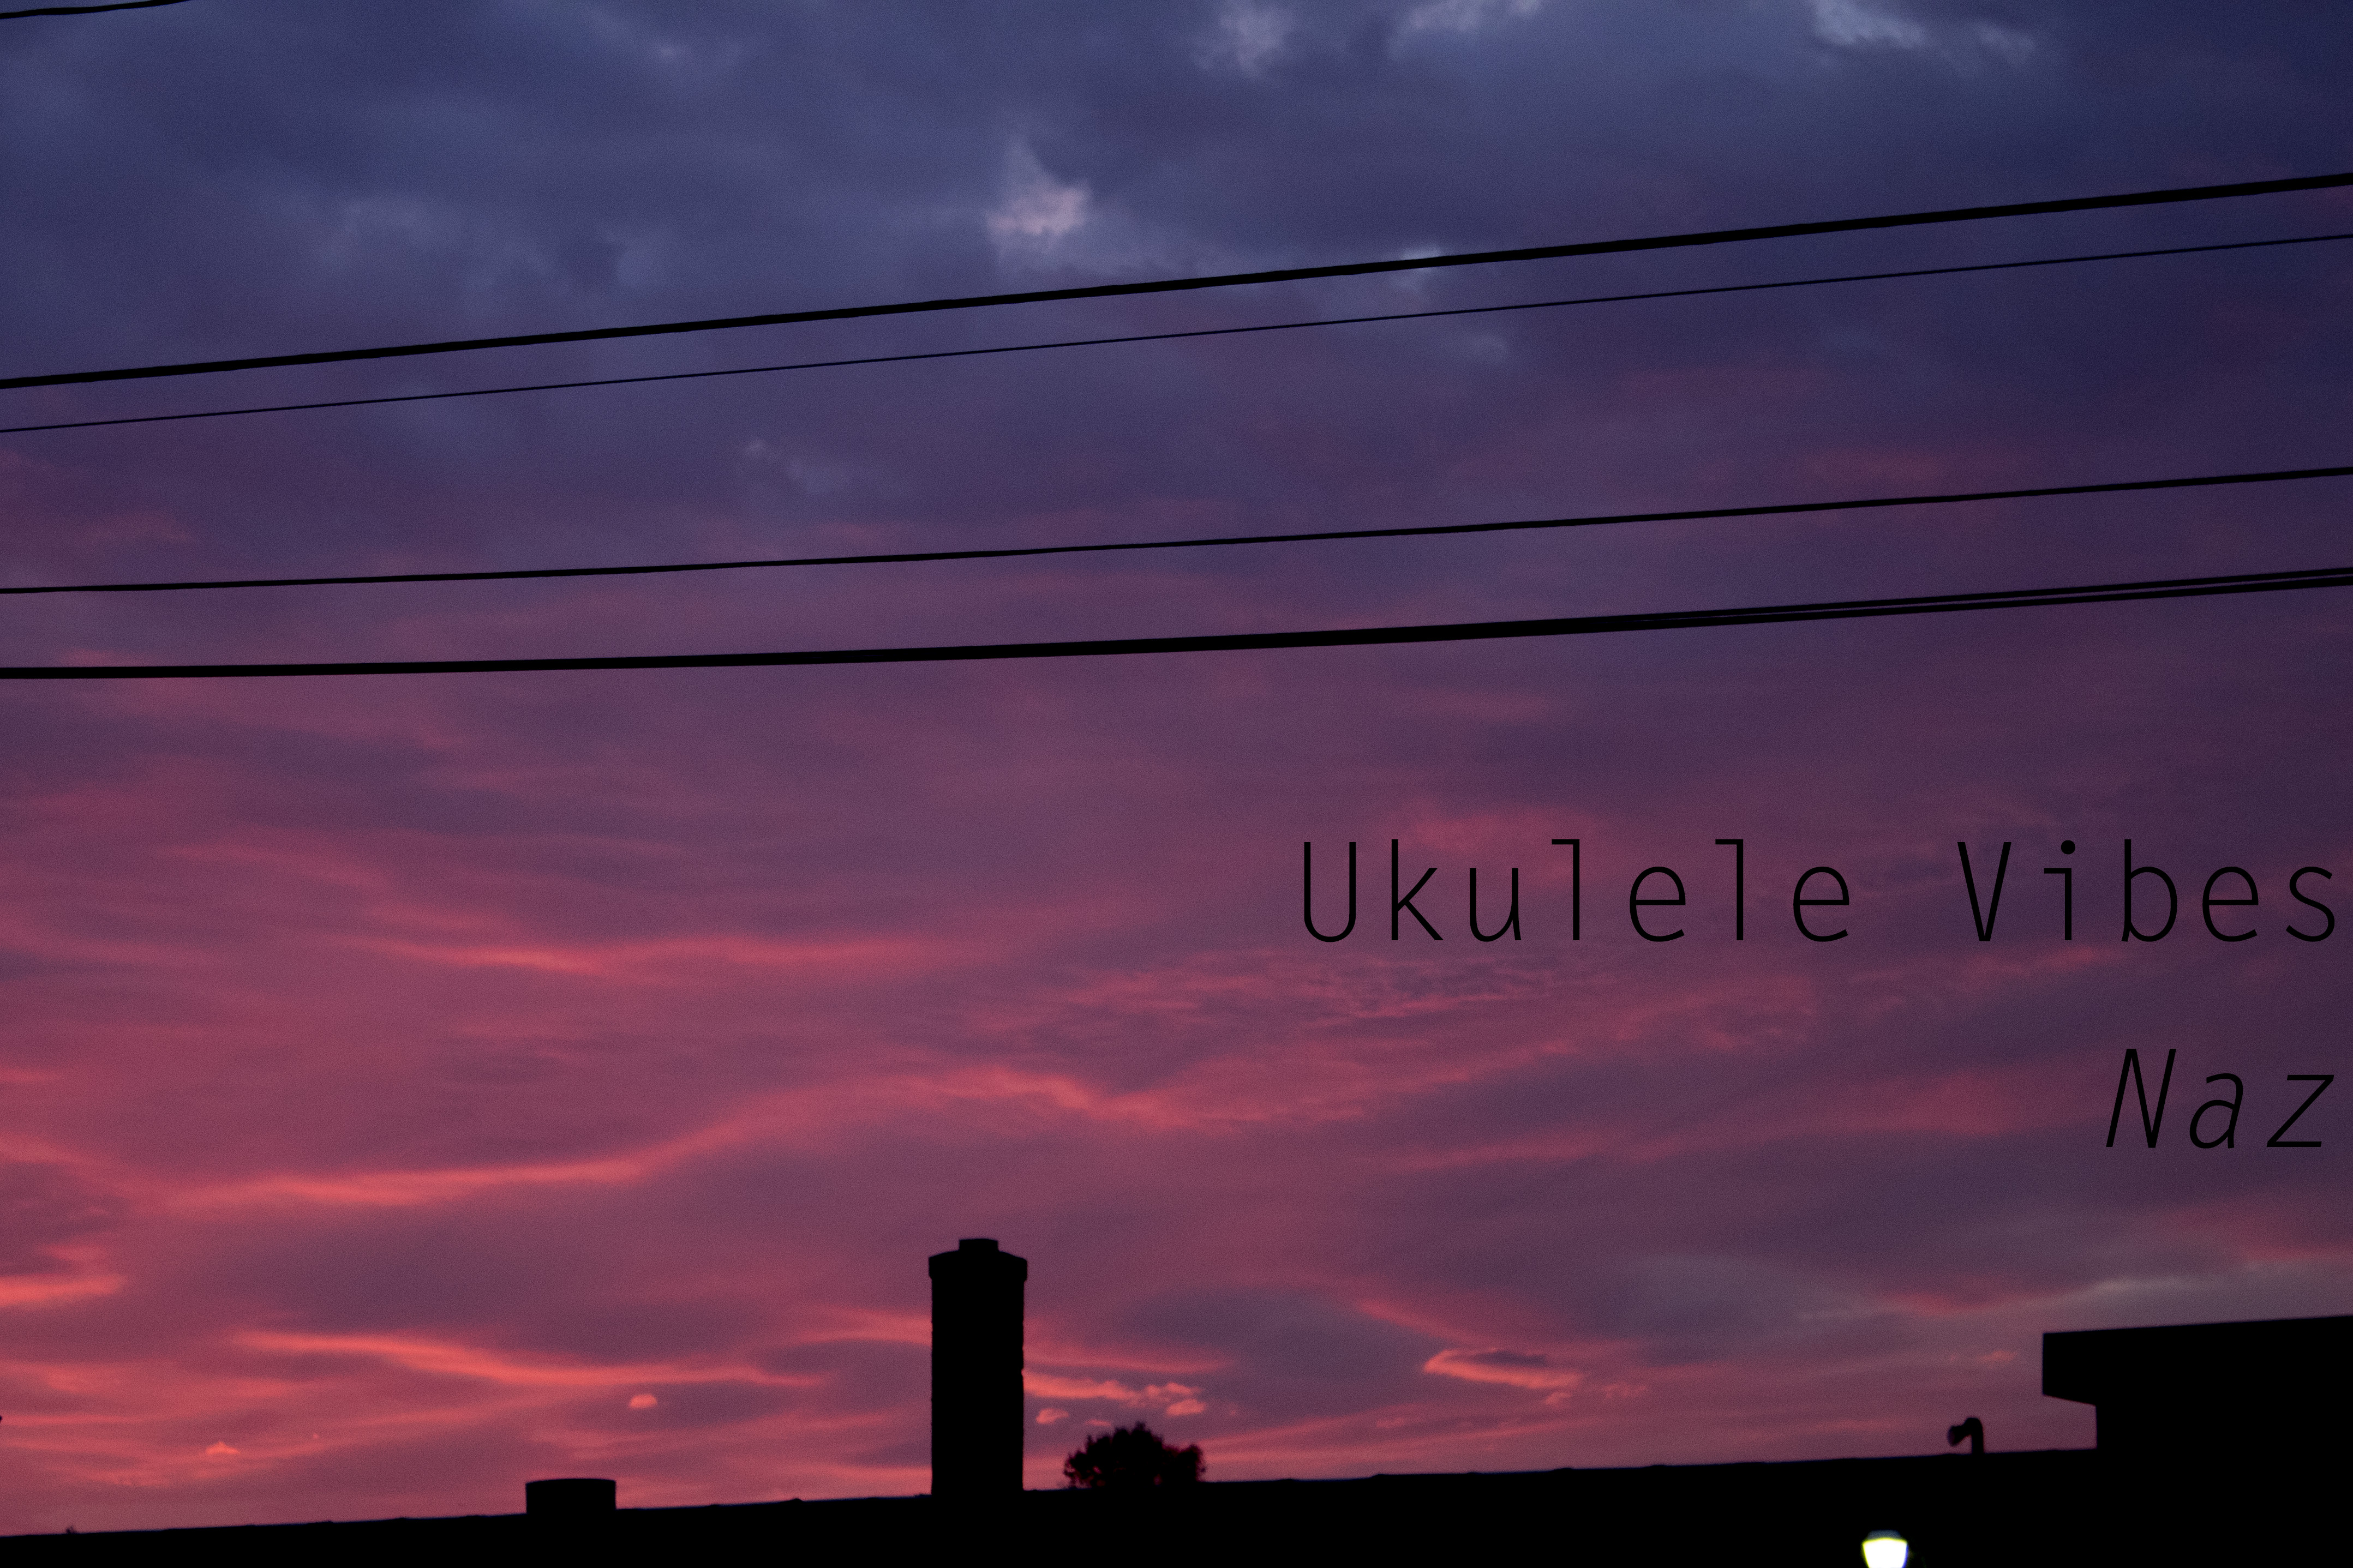 blue and pink sky with silhouette of houses at the bottom